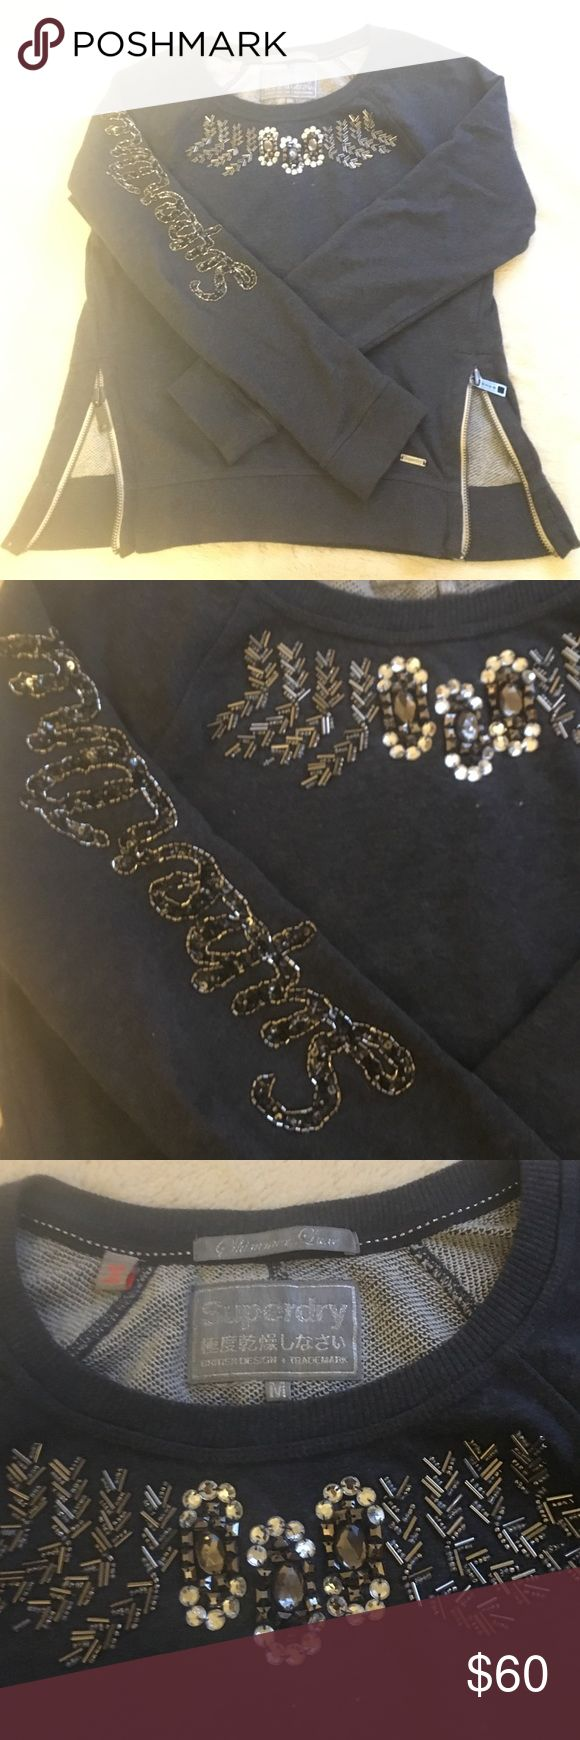 """Superdry Navy Embellished Sweatshirt M Navy, Rhinestone embellishment, """"Superdry"""" logo in sequins on one arm, functional side zippers. Size M absolute perfect condition NWOT Superdry Tops Sweatshirts & Hoodies"""